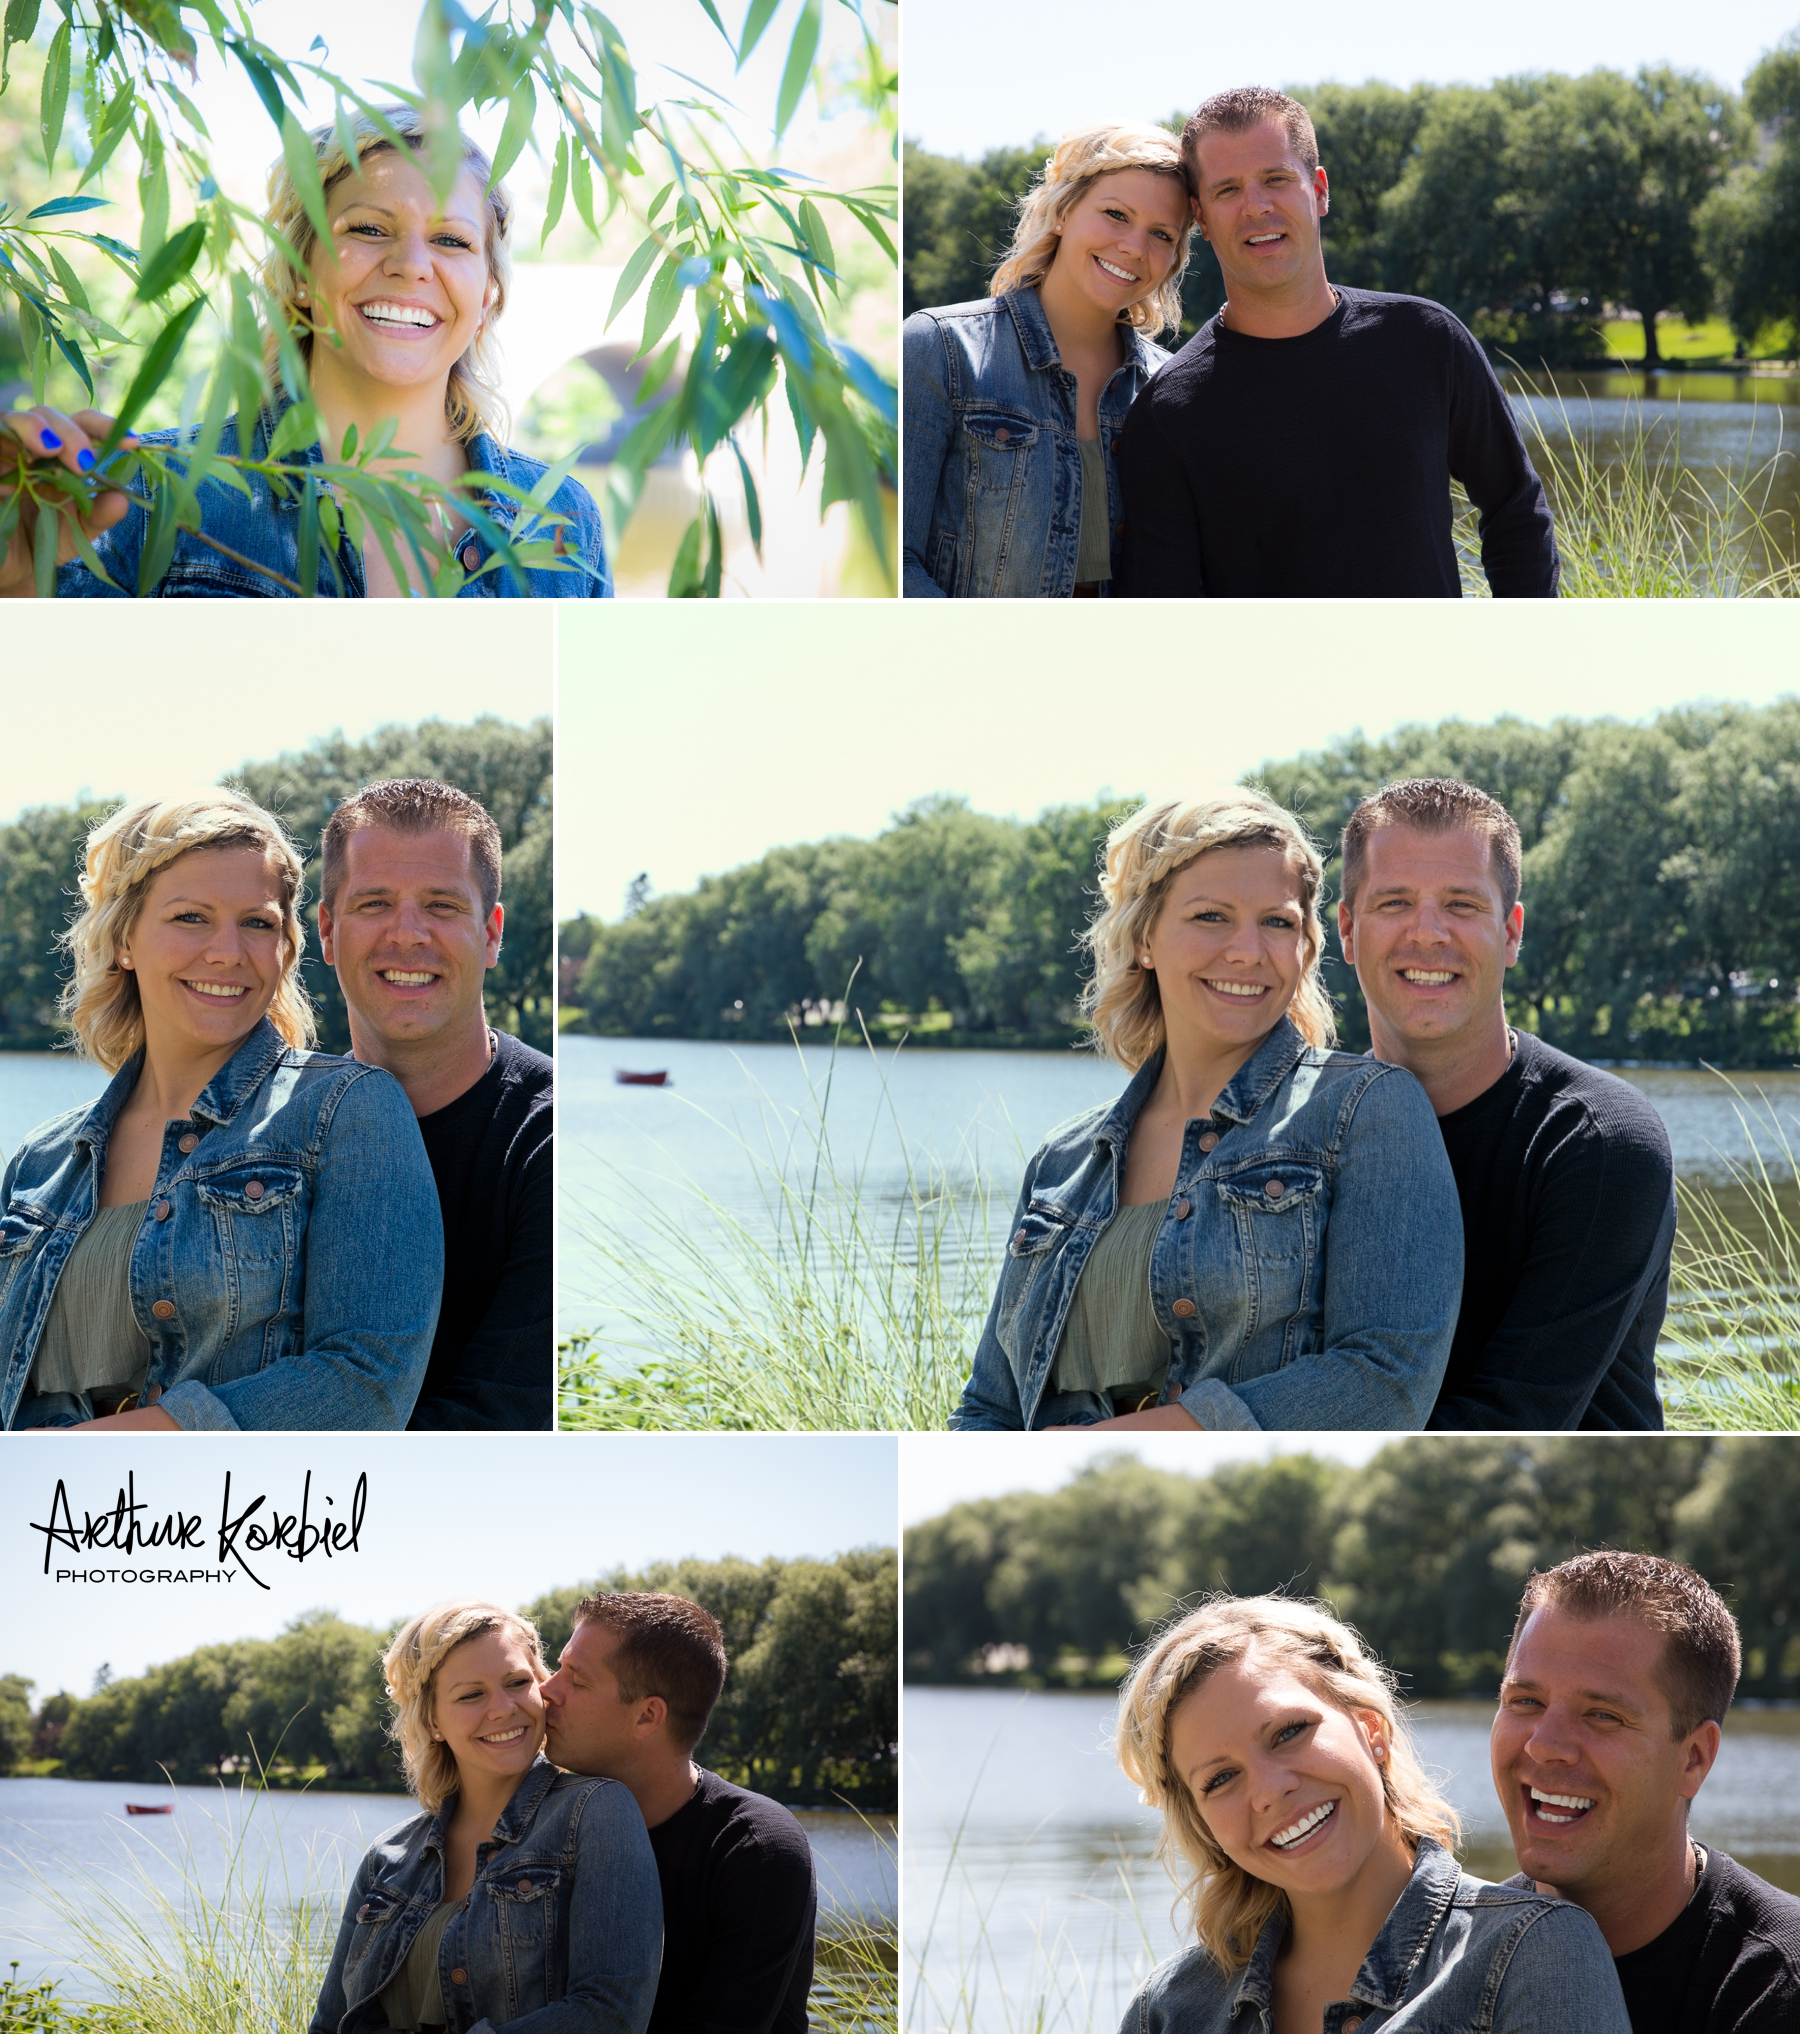 Arthur Korbiel Photography - London Engagement Photographer - Laura & Rick_007.jpg